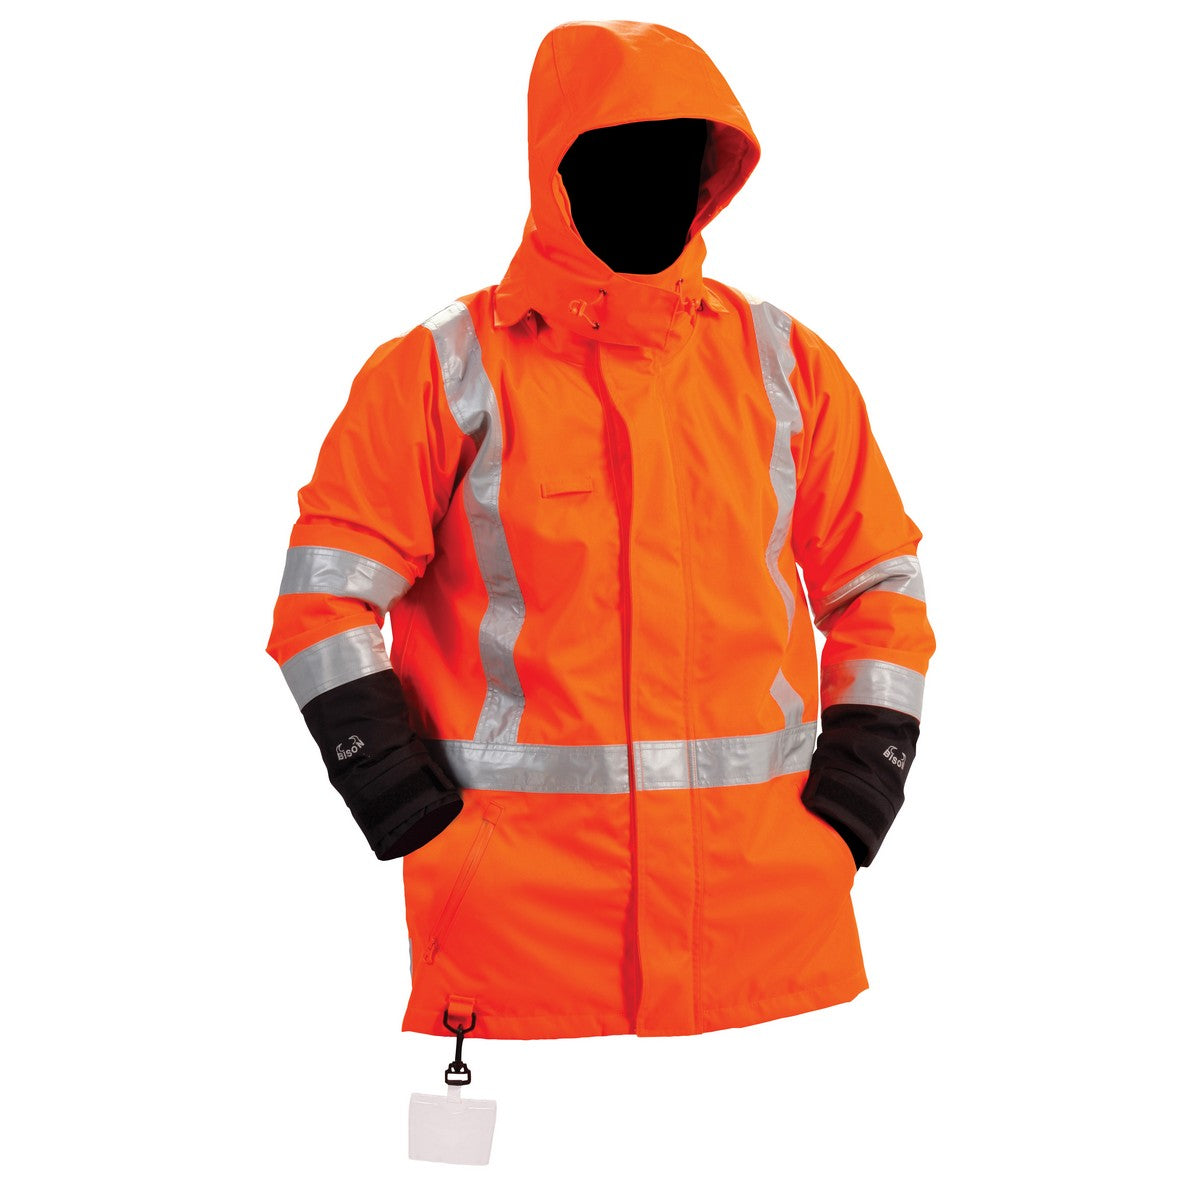 Image of Bison TTMC Extreme Jacket Orange